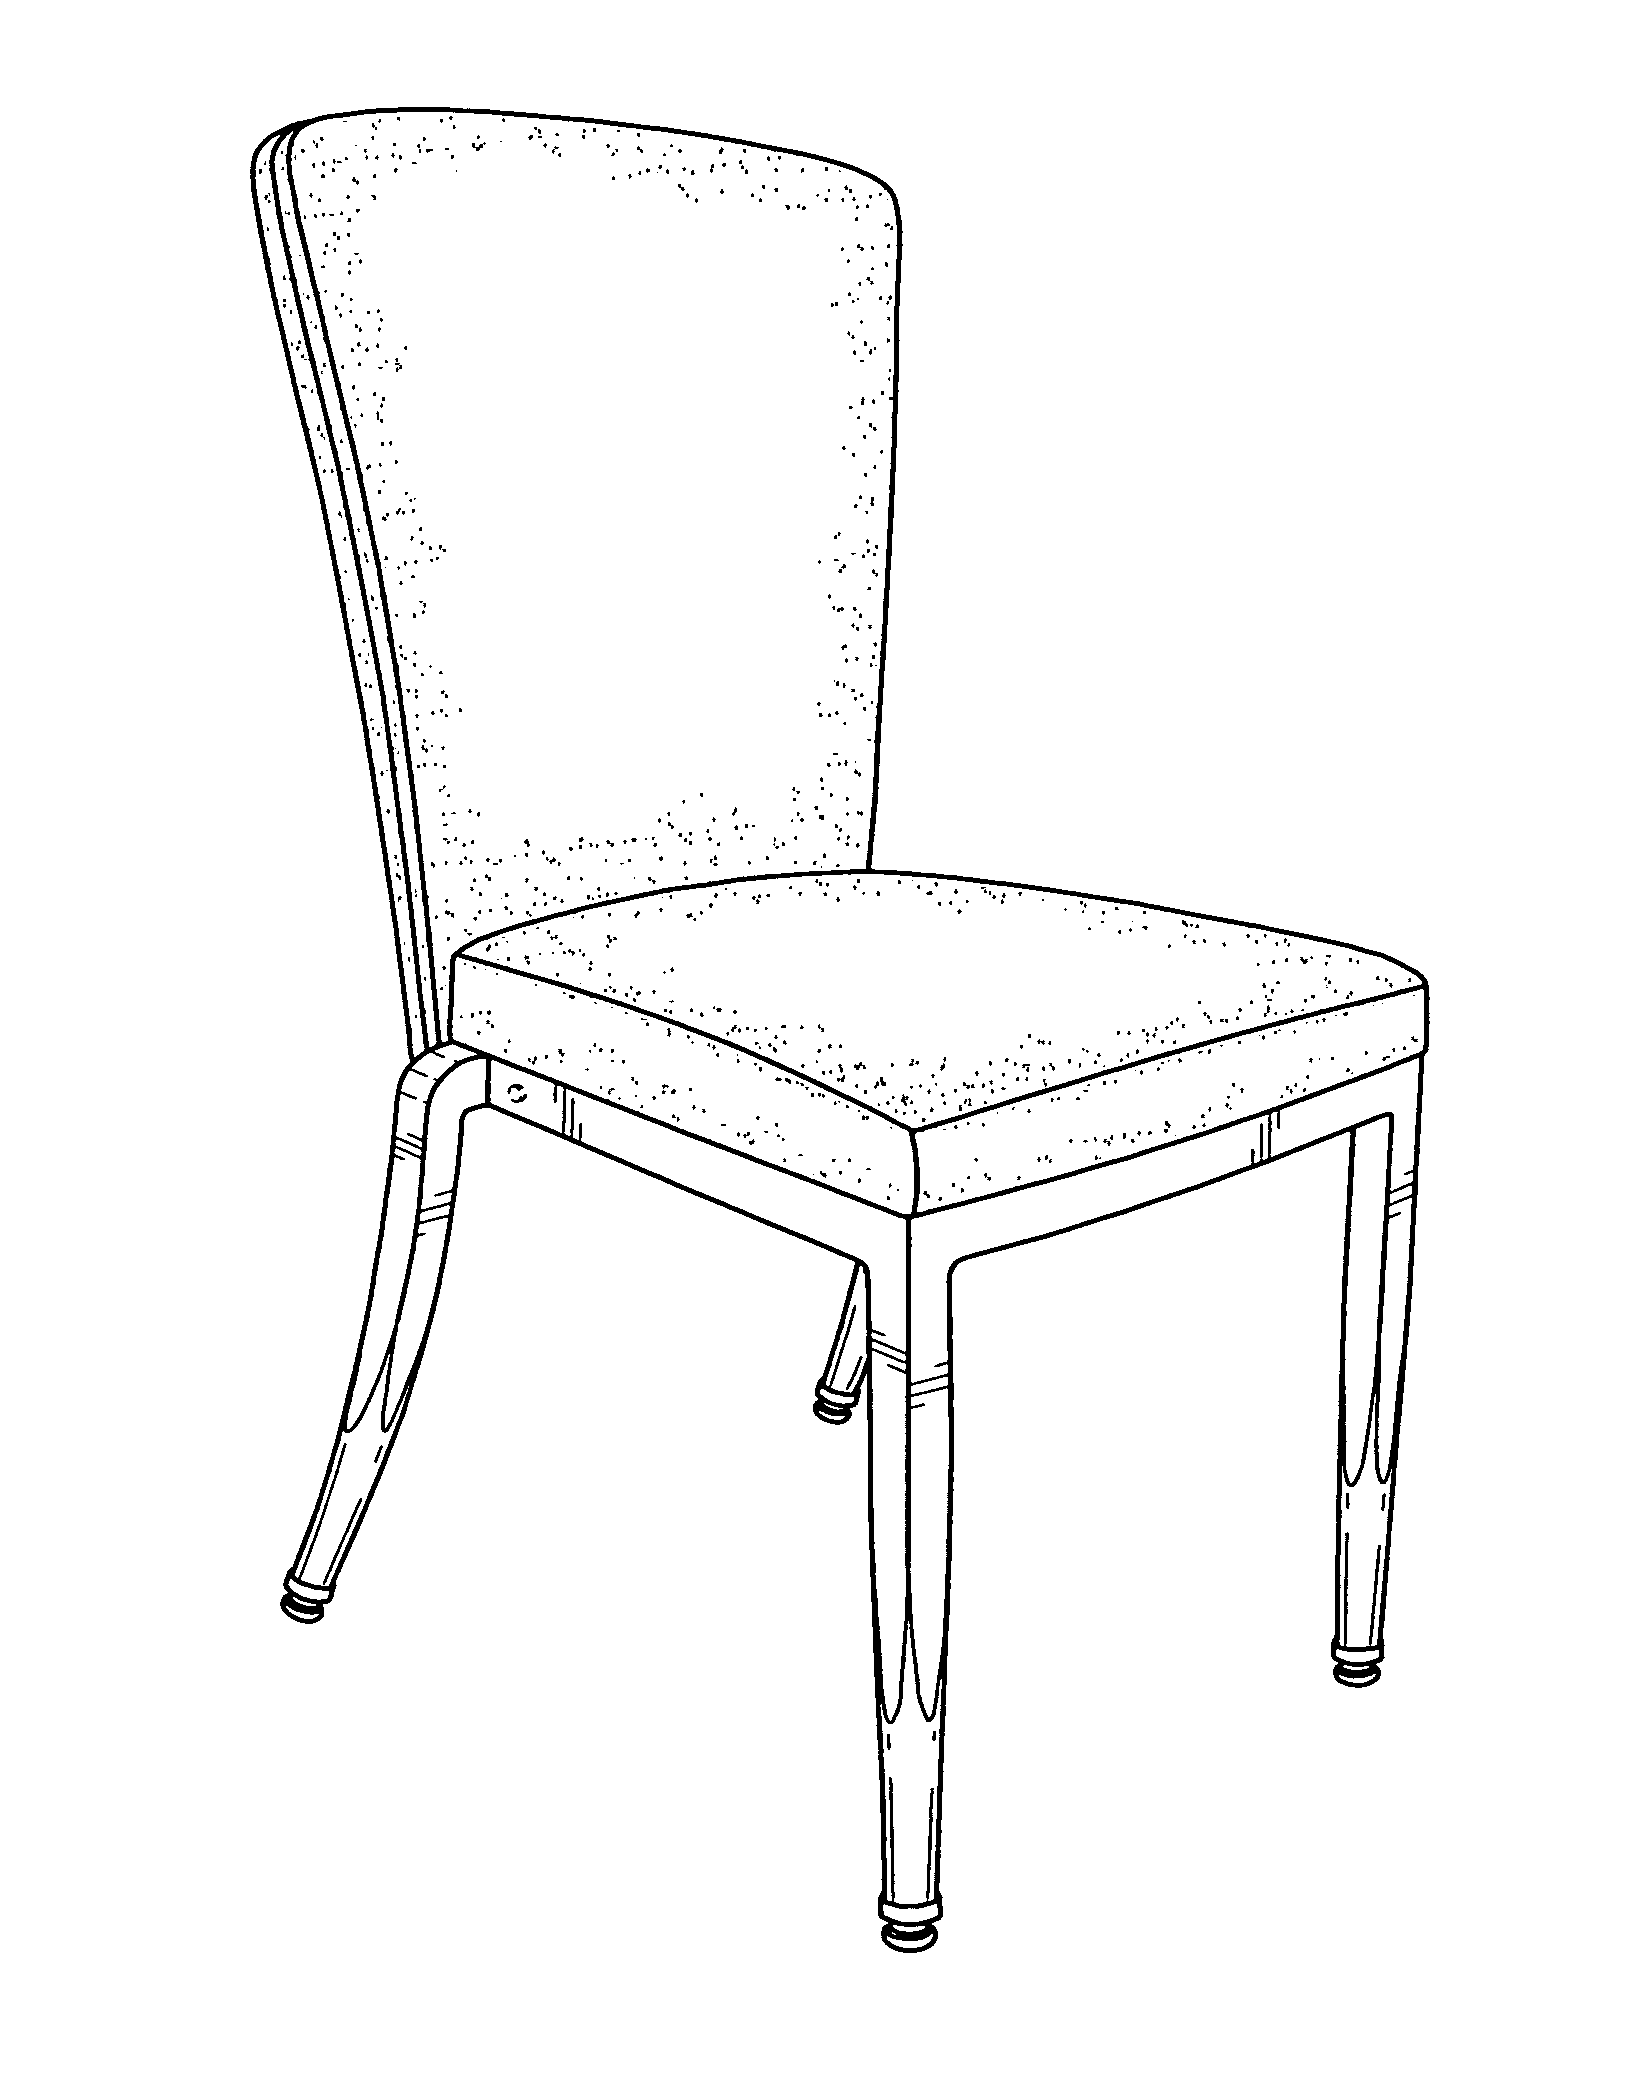 drawing chair a chair4 by indiart3612 on deviantart pencil drawings drawing chair